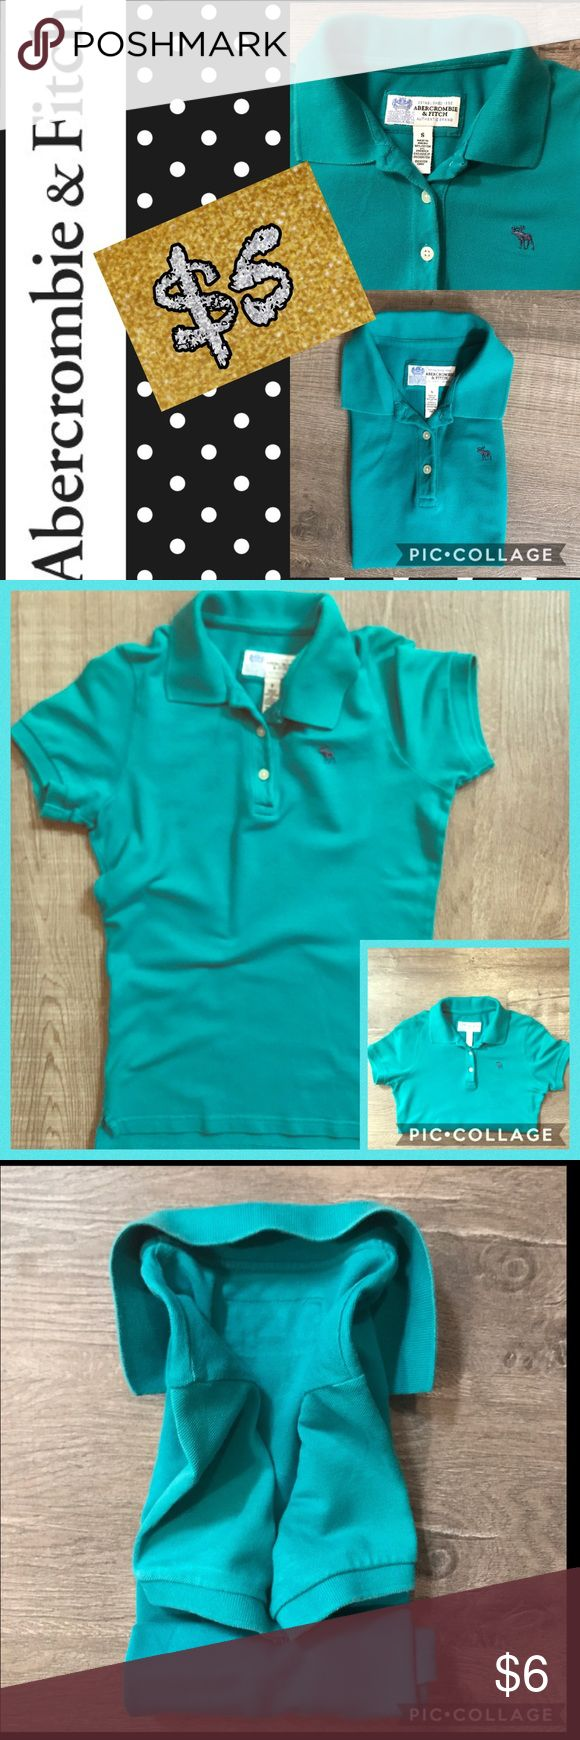 ABERCROMBIE & FITCH POLO SHIRT Icon polo TURQUOISE/ material in good condition /no holes or stain free 💯 iron and steamed / cleaned and No smell / good to go. Lowest price so far in used item online . Thank you for considering. Tops